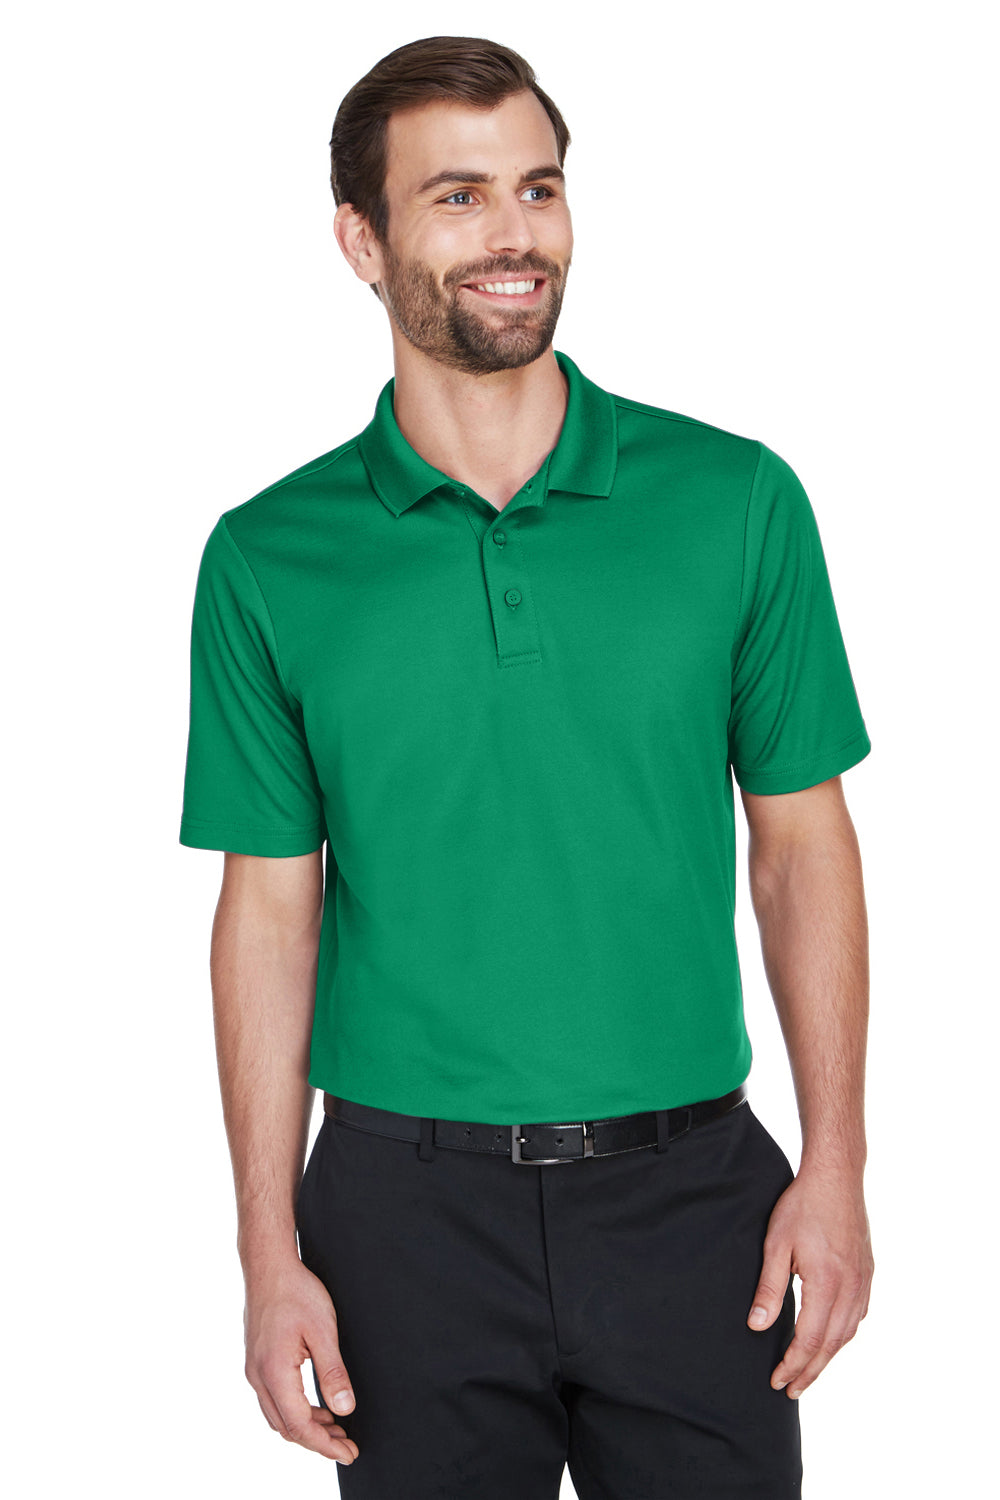 Devon & Jones DG20 CrownLux Performance Moisture Wicking Short Sleeve Polo Shirt Kelly Green Front